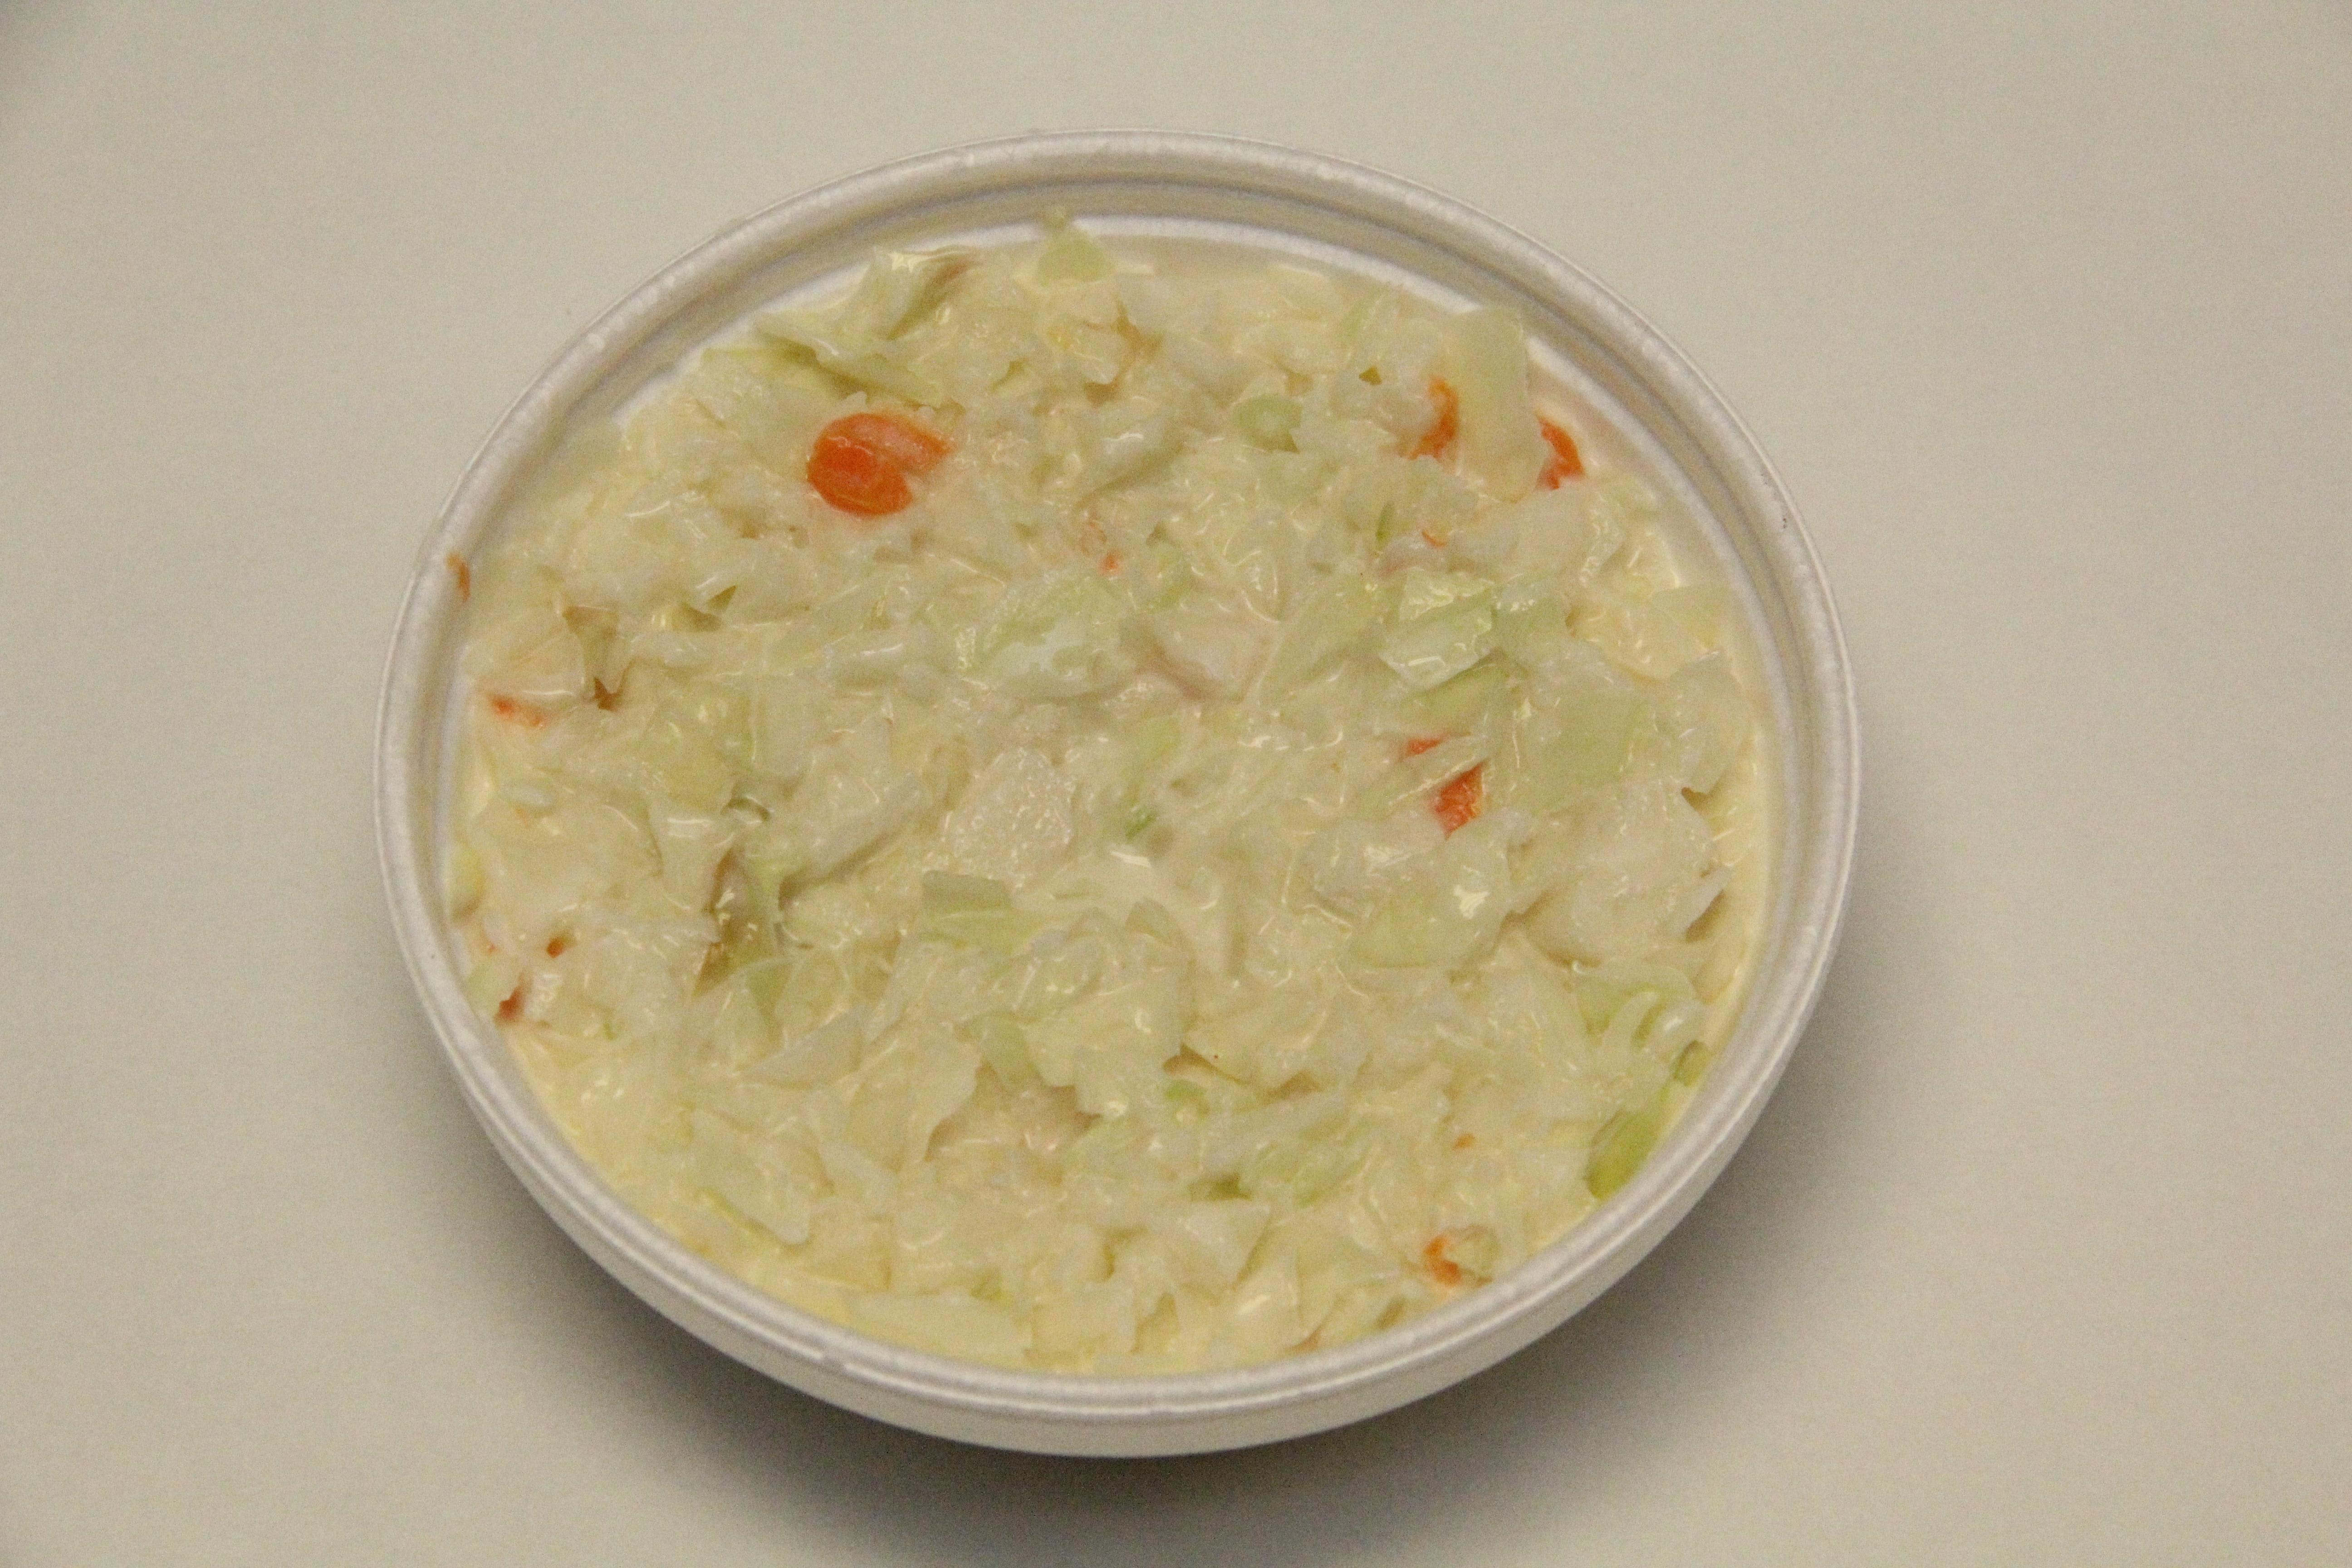 A small Cole Slaw homemade at Squabs Gyros